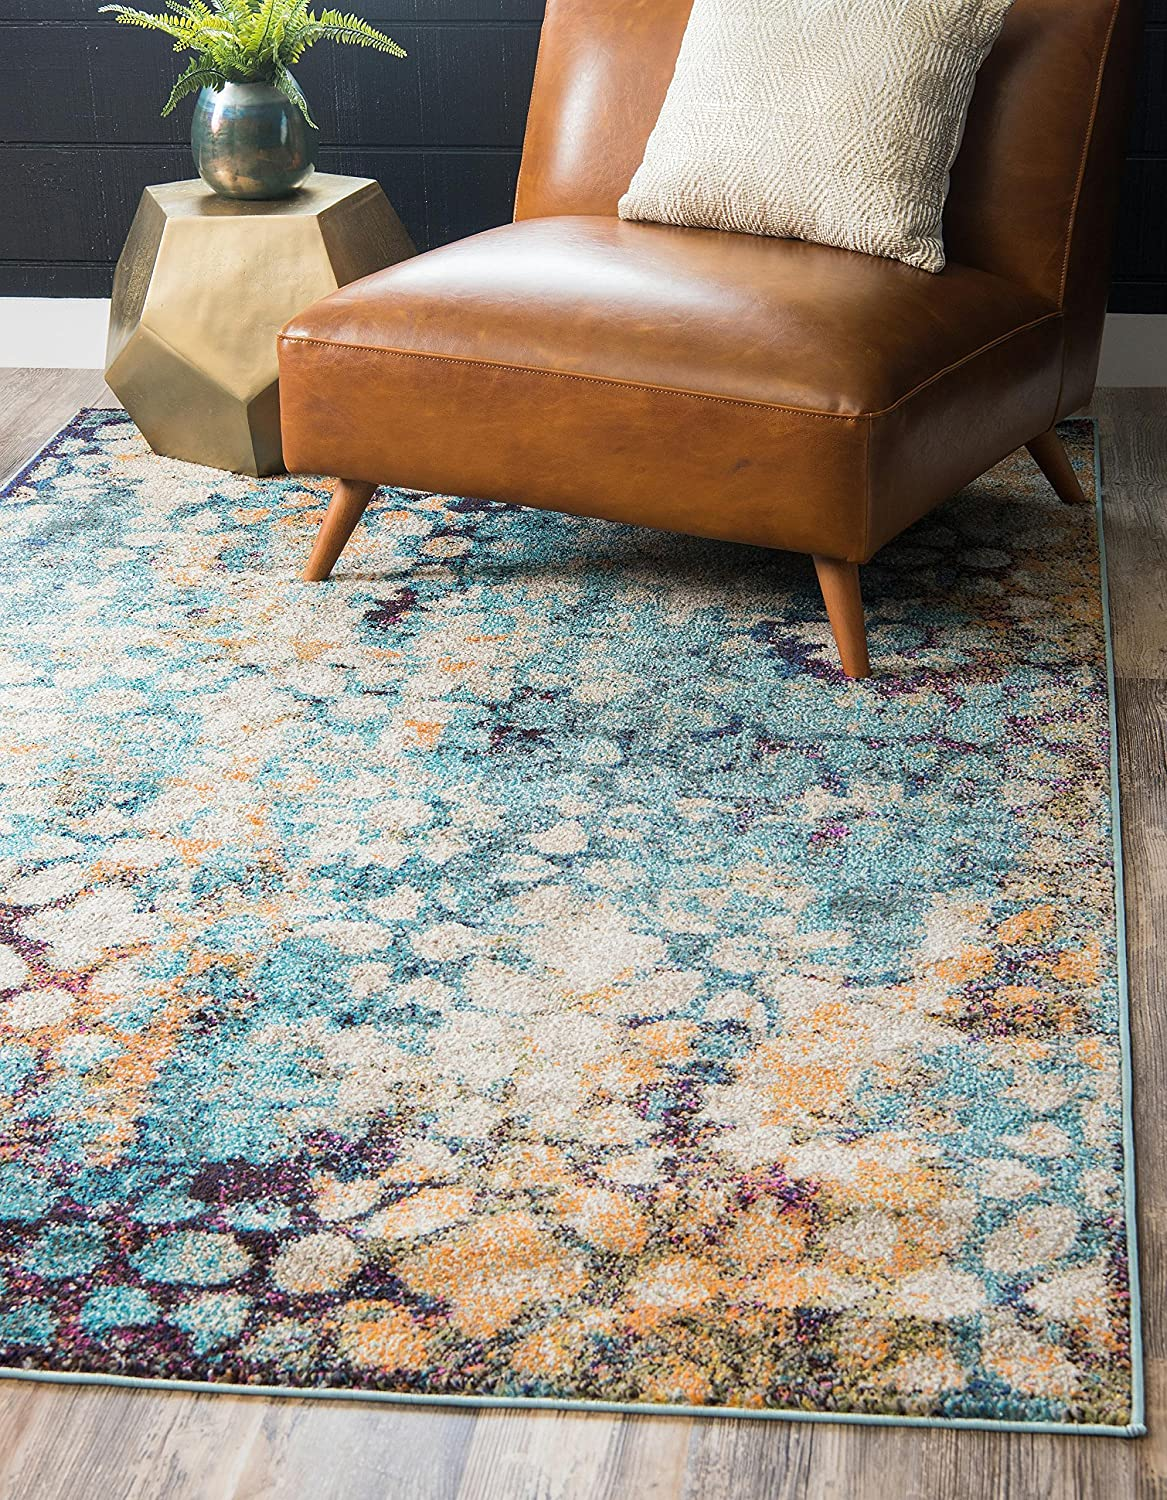 Unique Loom Vita Collection Traditional Over-Dyed Vintage Blue Area Rug (9' 0 x 12' 0)